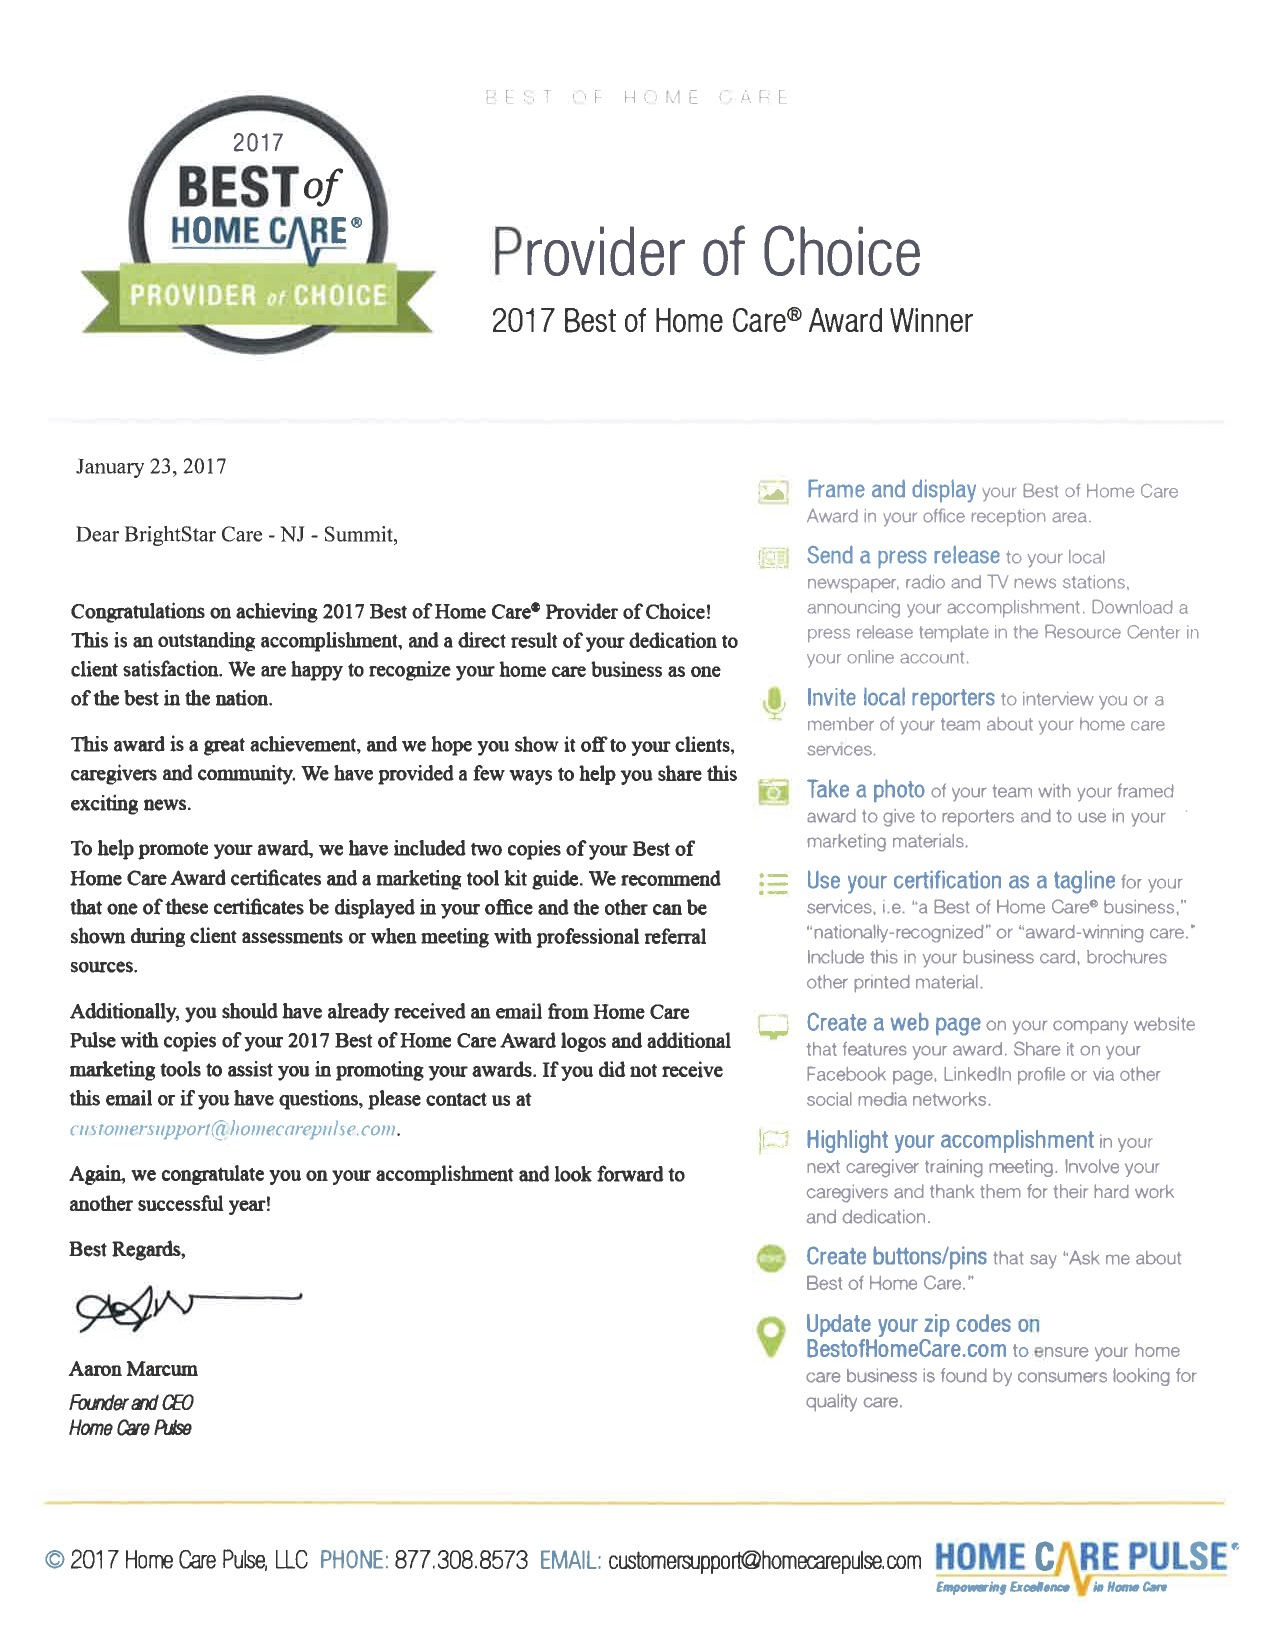 Provider of Choice Letter